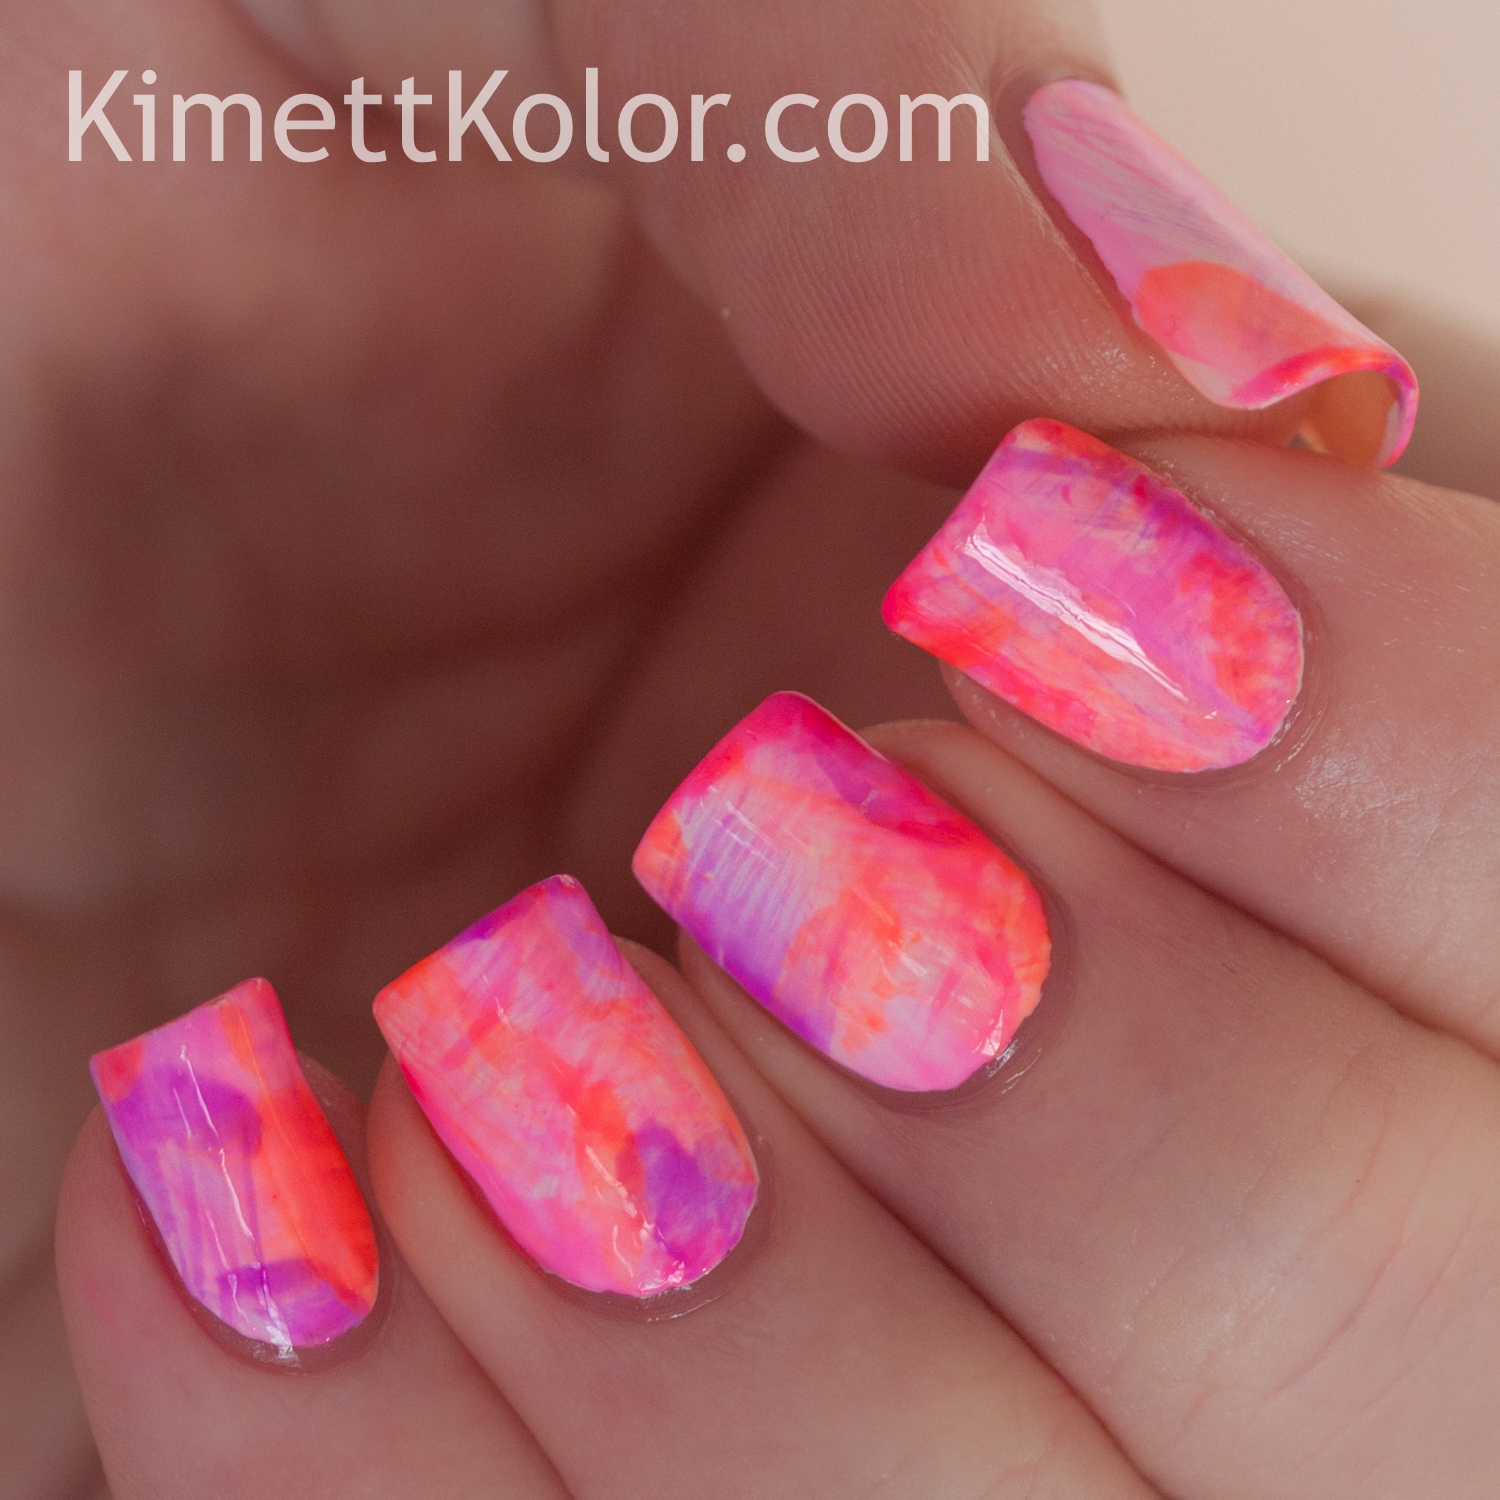 #whencolourscollide purple_organge_pink nail art KimettKolor